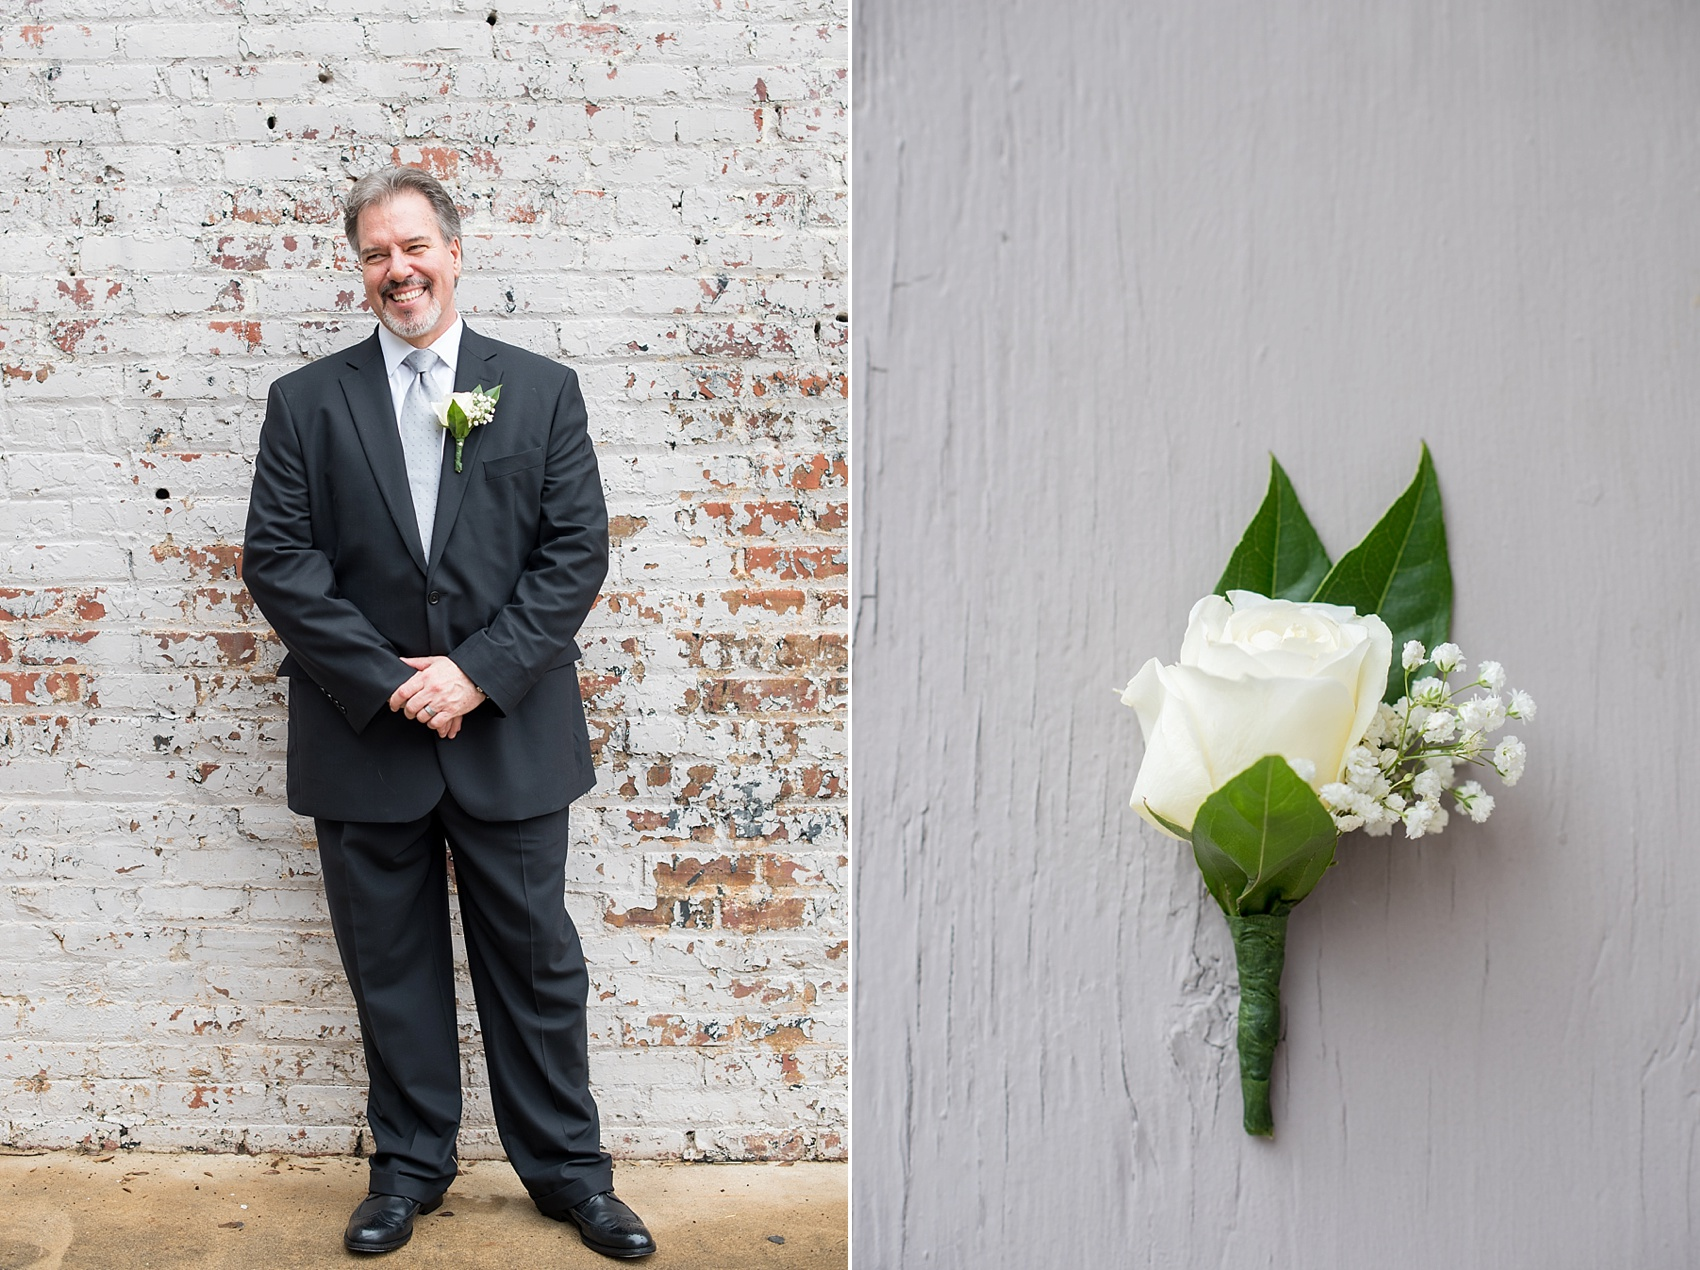 Downtown Raleigh, NC mixed race wedding. Photos by Mikkel Paige Photography. Older groom and white rose boutonniere.